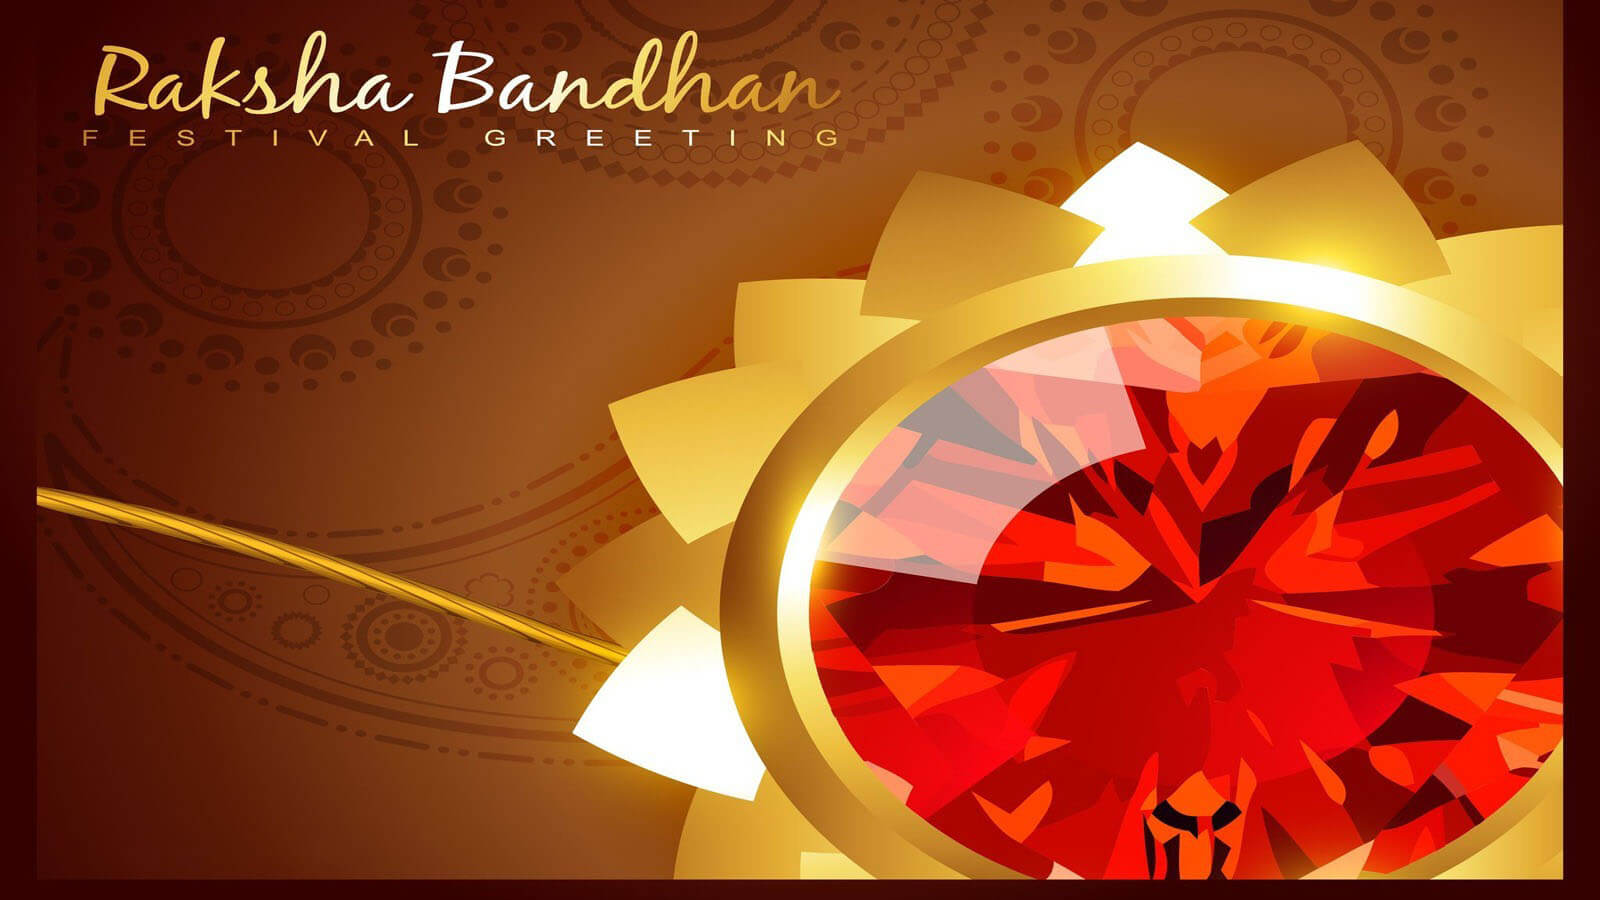 happy raksha bandhan festival greetings hd wallpaper